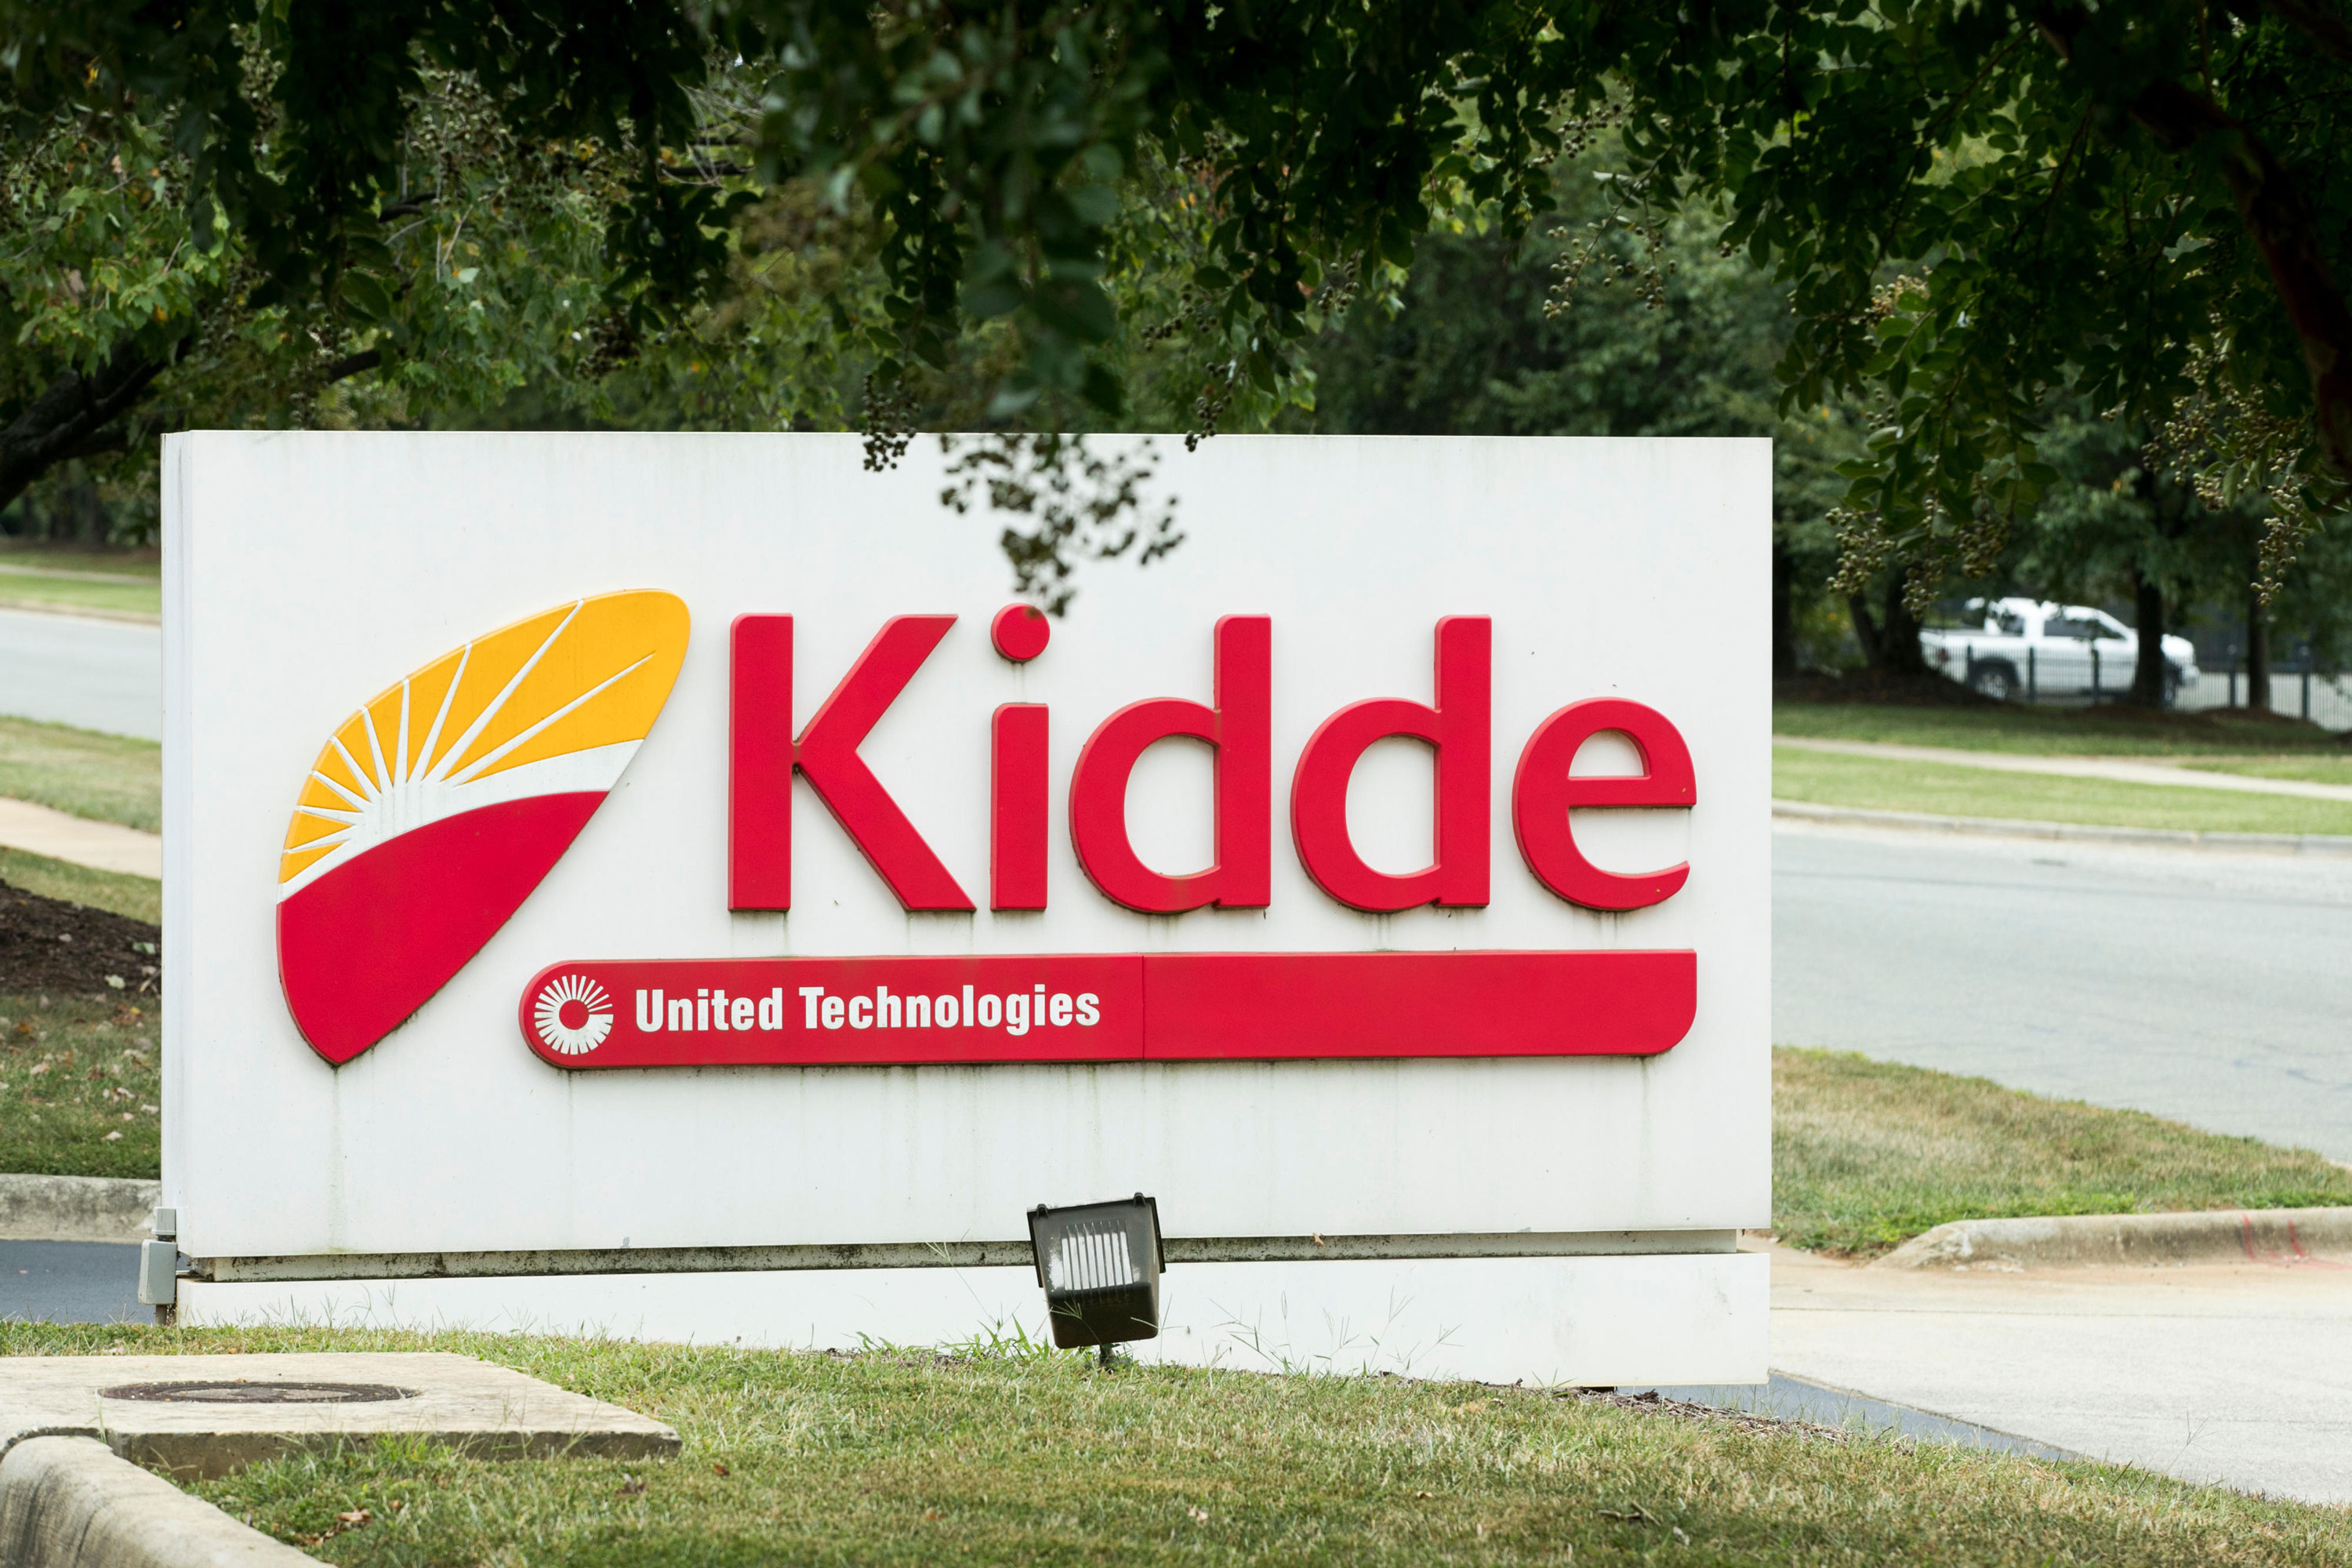 Kidde recalls more than 200,000 smoke alarms over failure to warn of fire